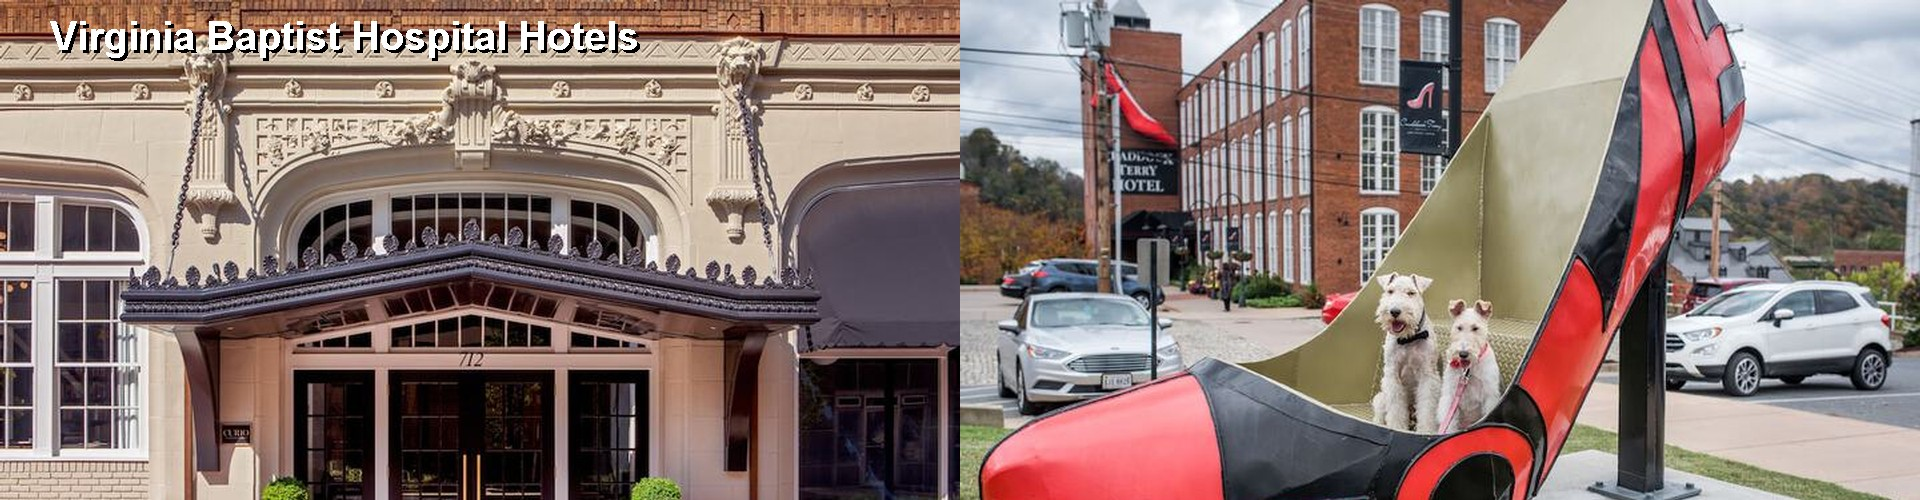 5 Best Hotels near Virginia Baptist Hospital